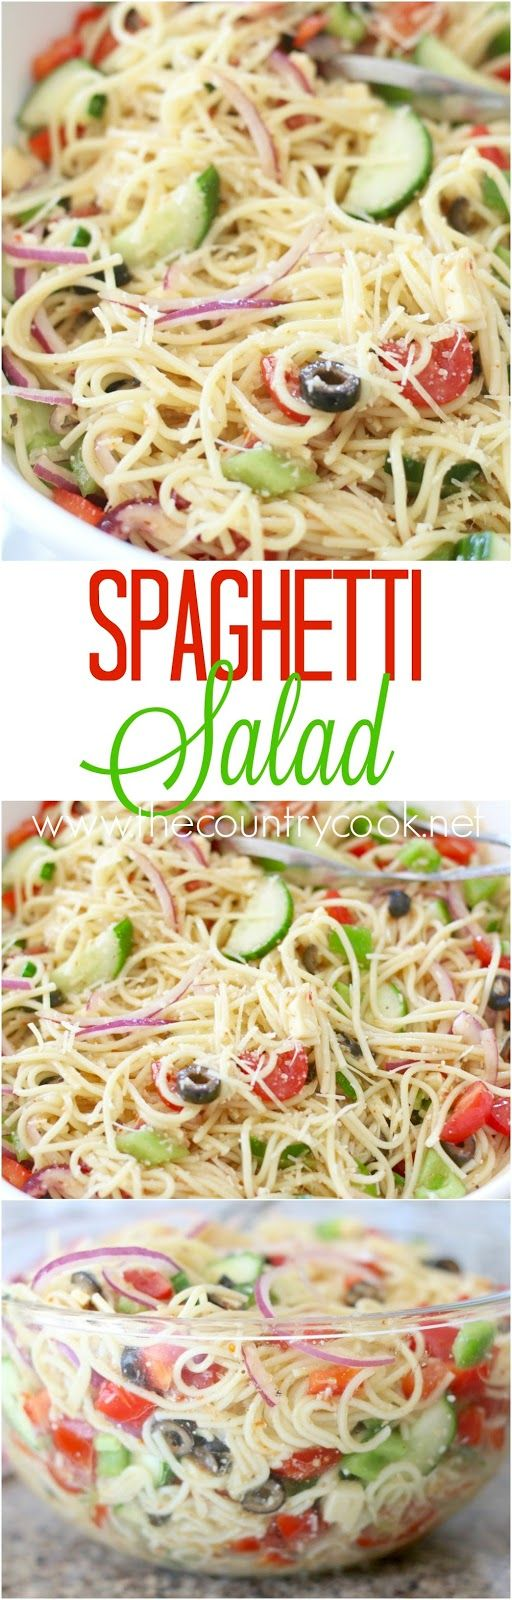 Tis the season for pasta salads! As those veggies start popping up in your garden, you will want to make this recipe often. It is light an...